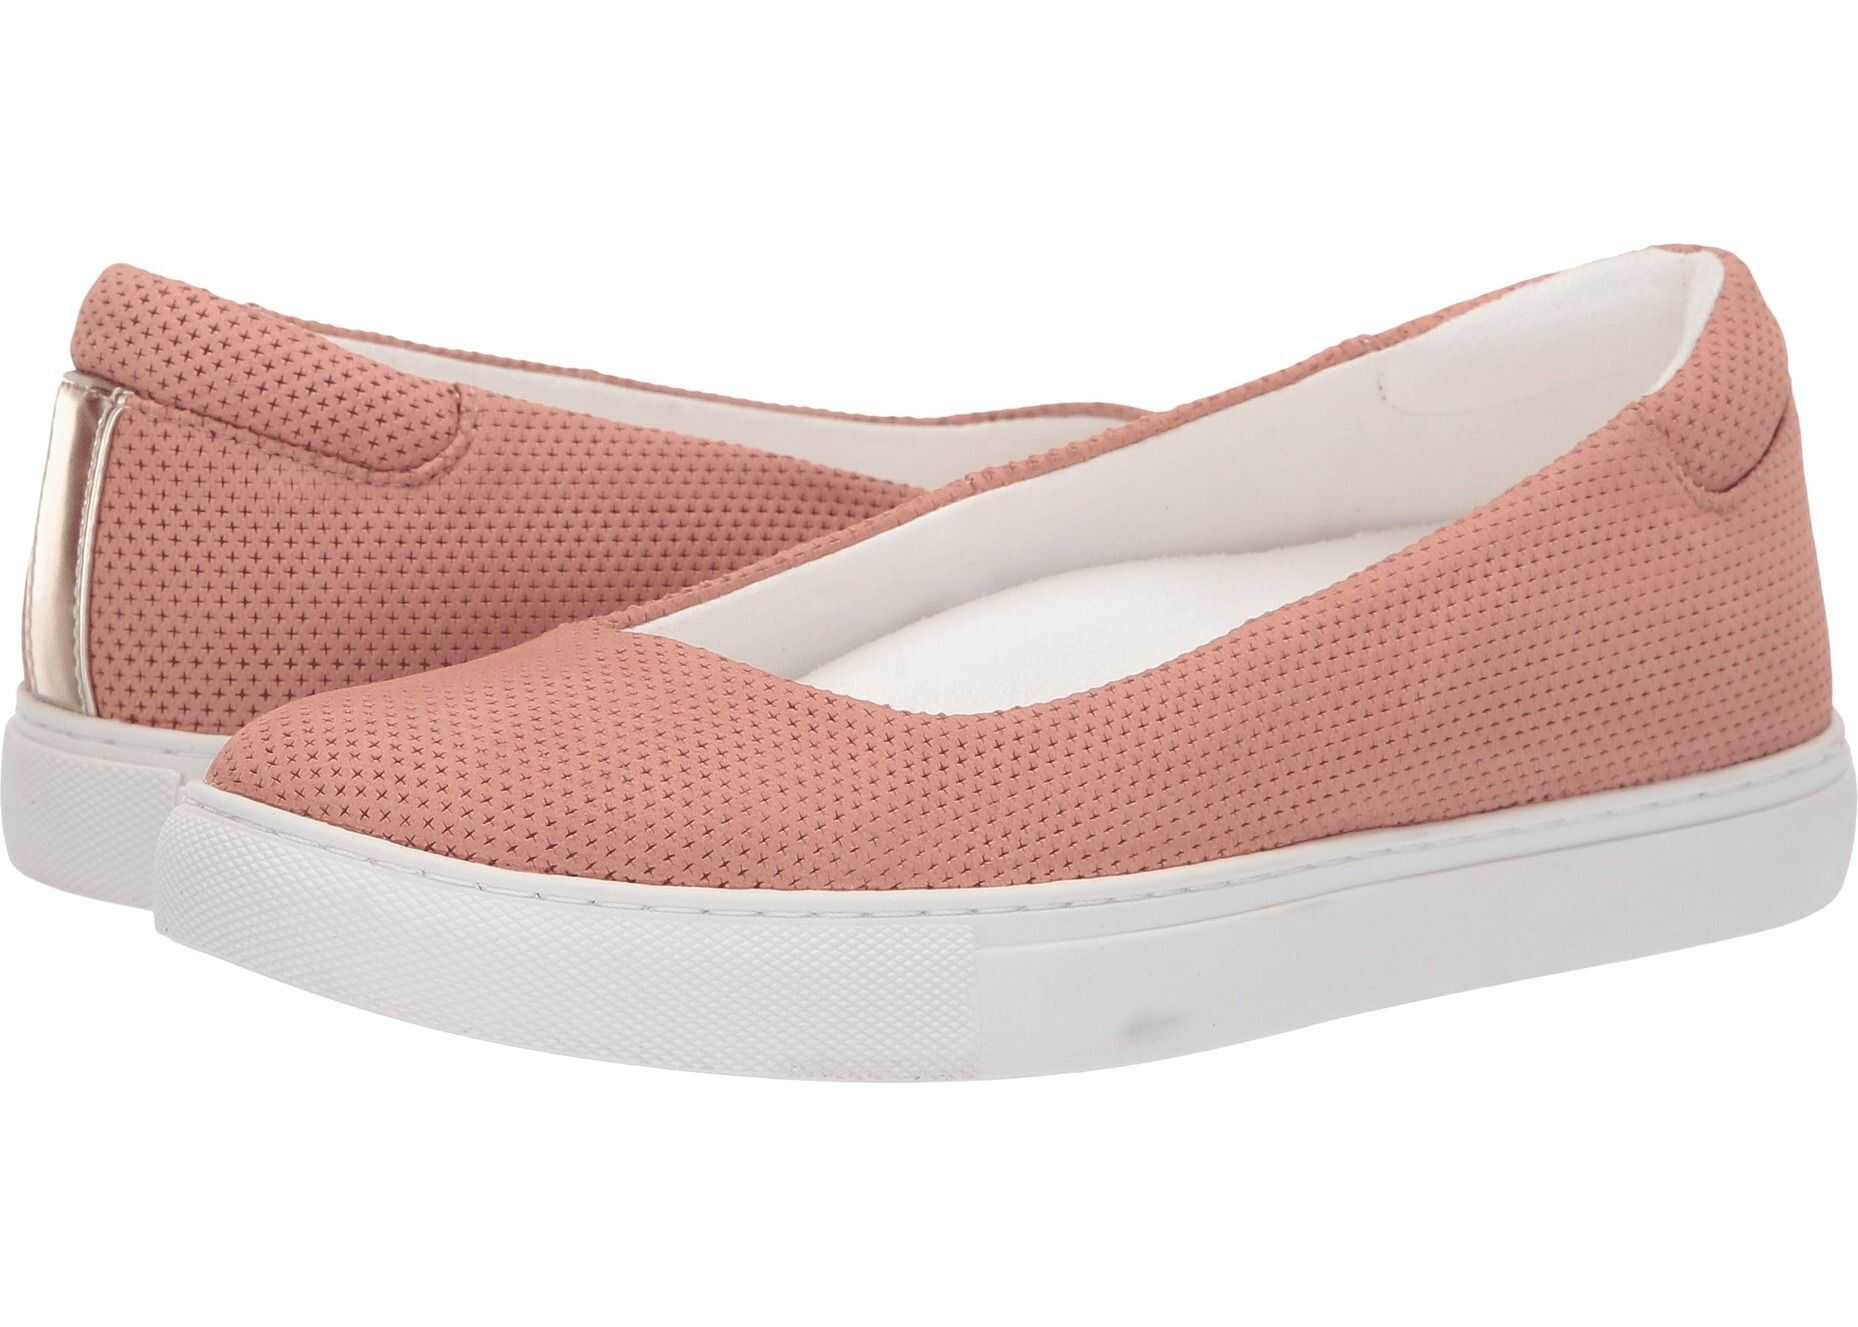 Kenneth Cole New York Kassie 2 Rose Nubuck